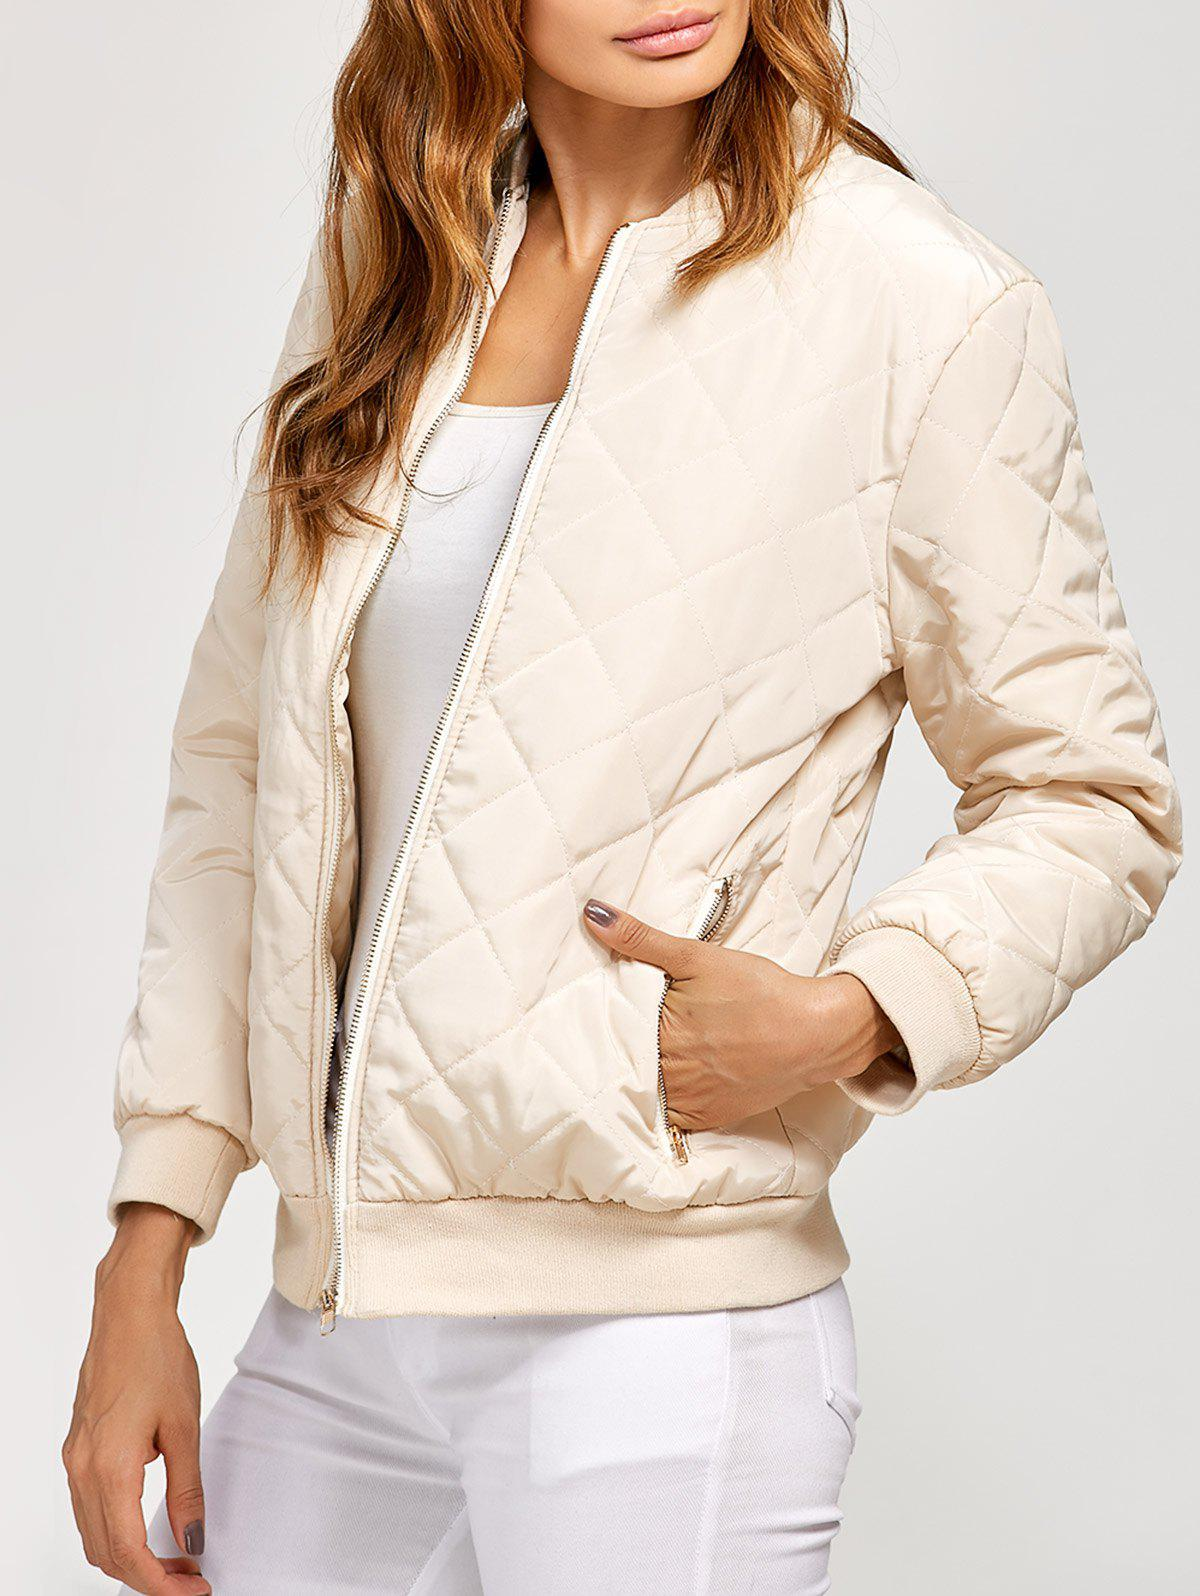 Rhombus Zipper Fly Bomber Jacket - OFF WHITE L